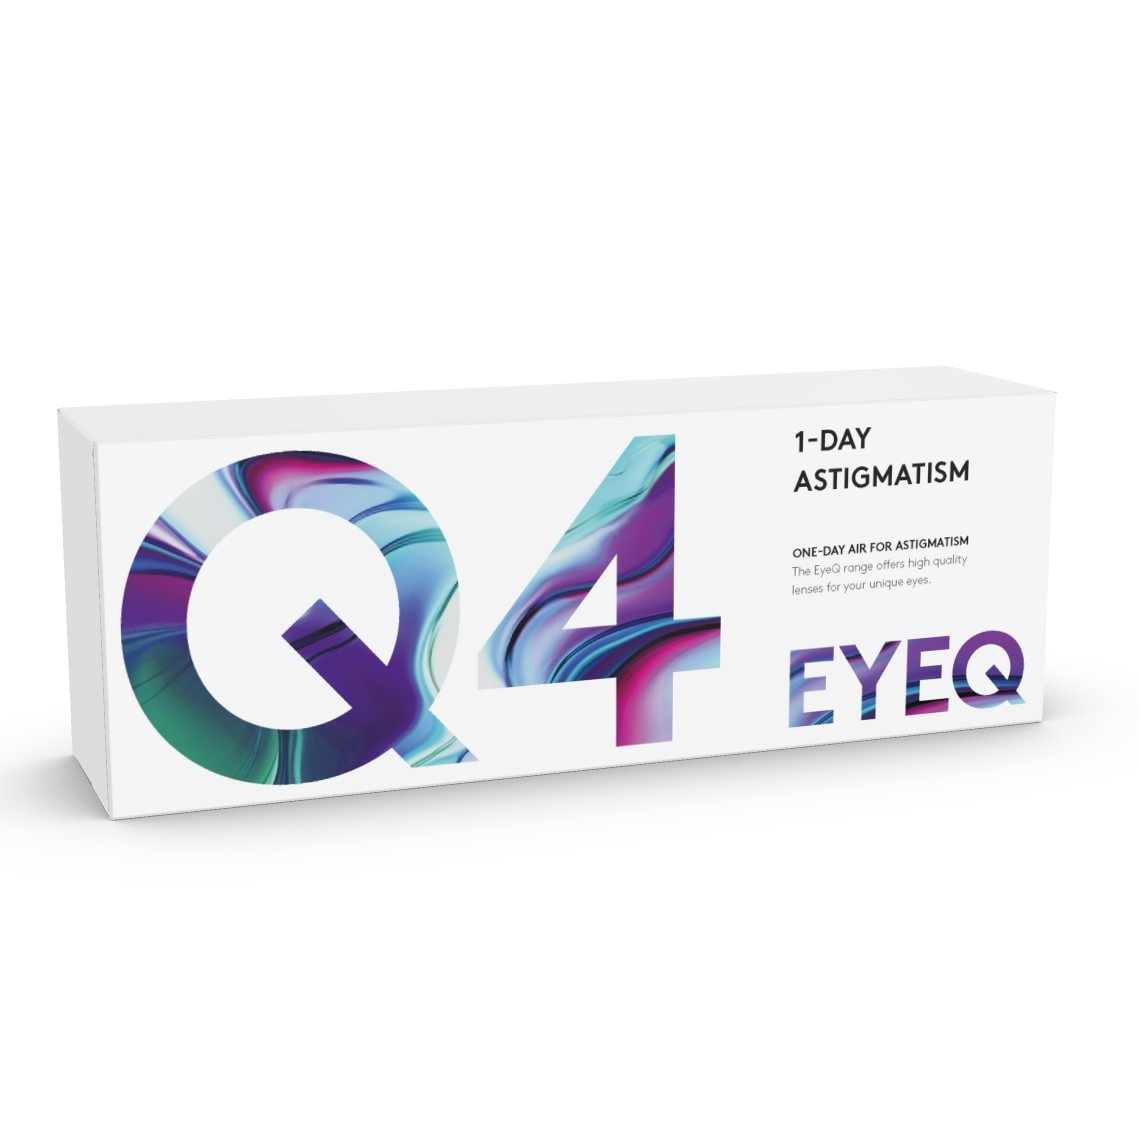 EyeQ One-Day Air For Astigmatism Q4 30 stk/pk